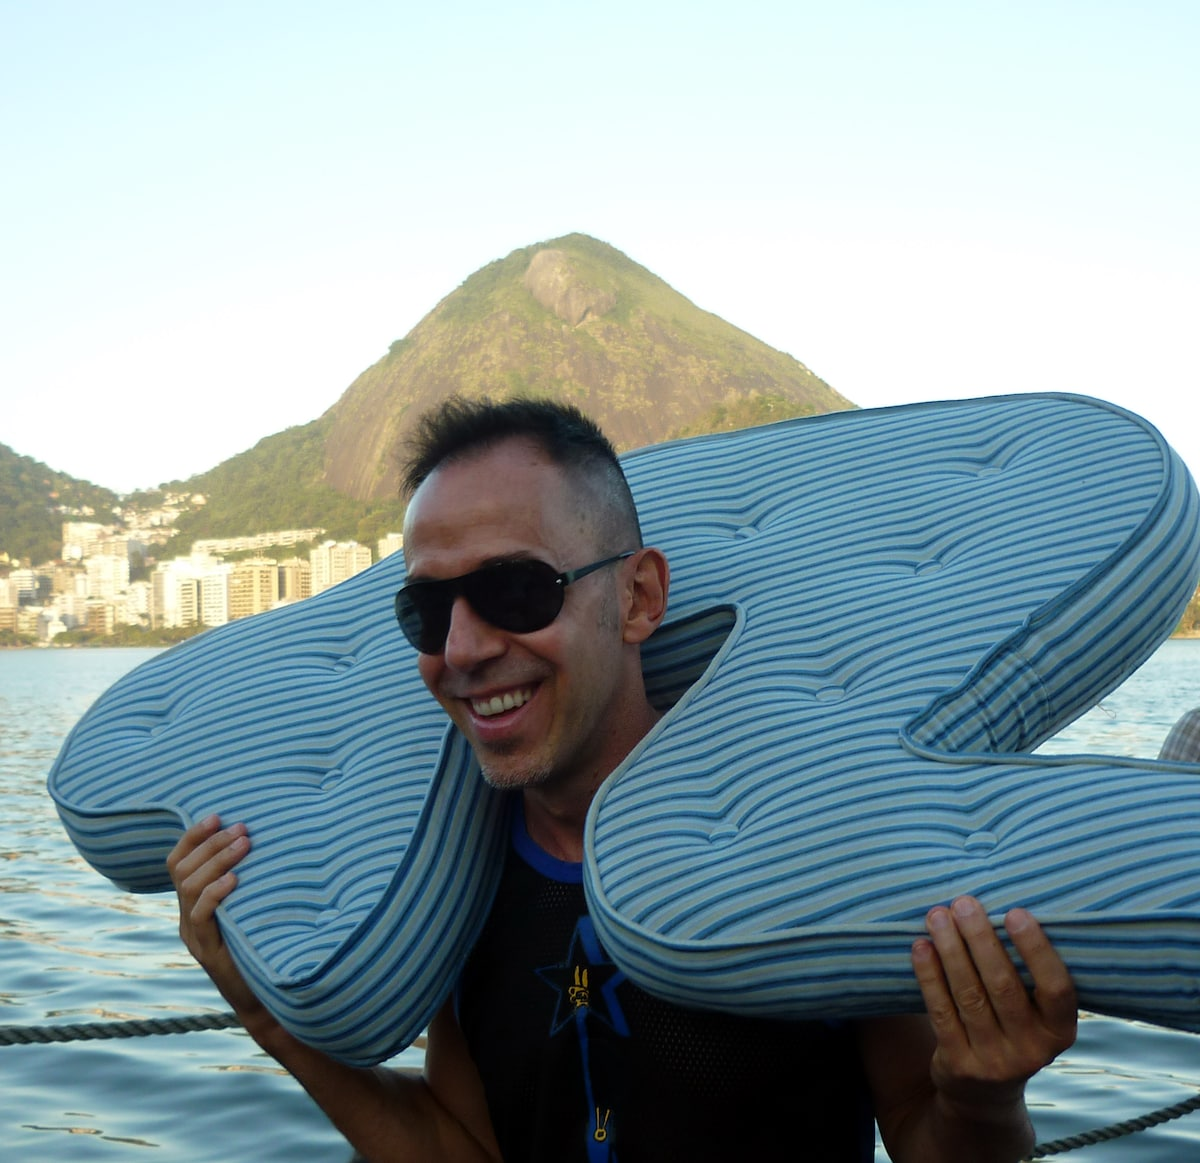 I am Ivo. I'm a fashion designer and I live in Rio